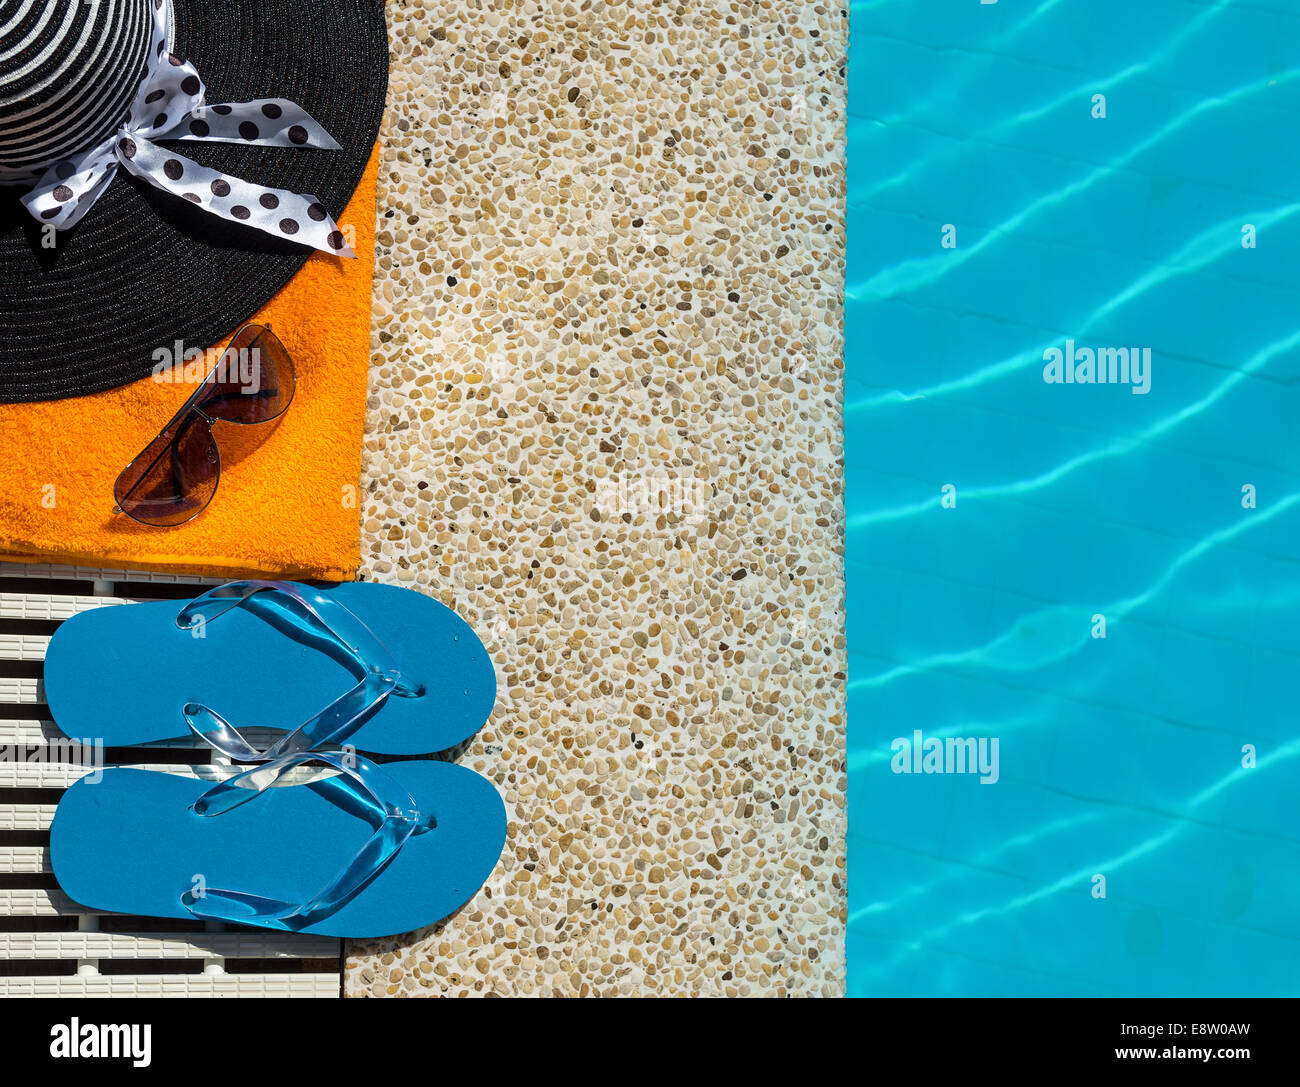 Flip Flop, towel, hat on pool edge with surface of water background - Stock Image